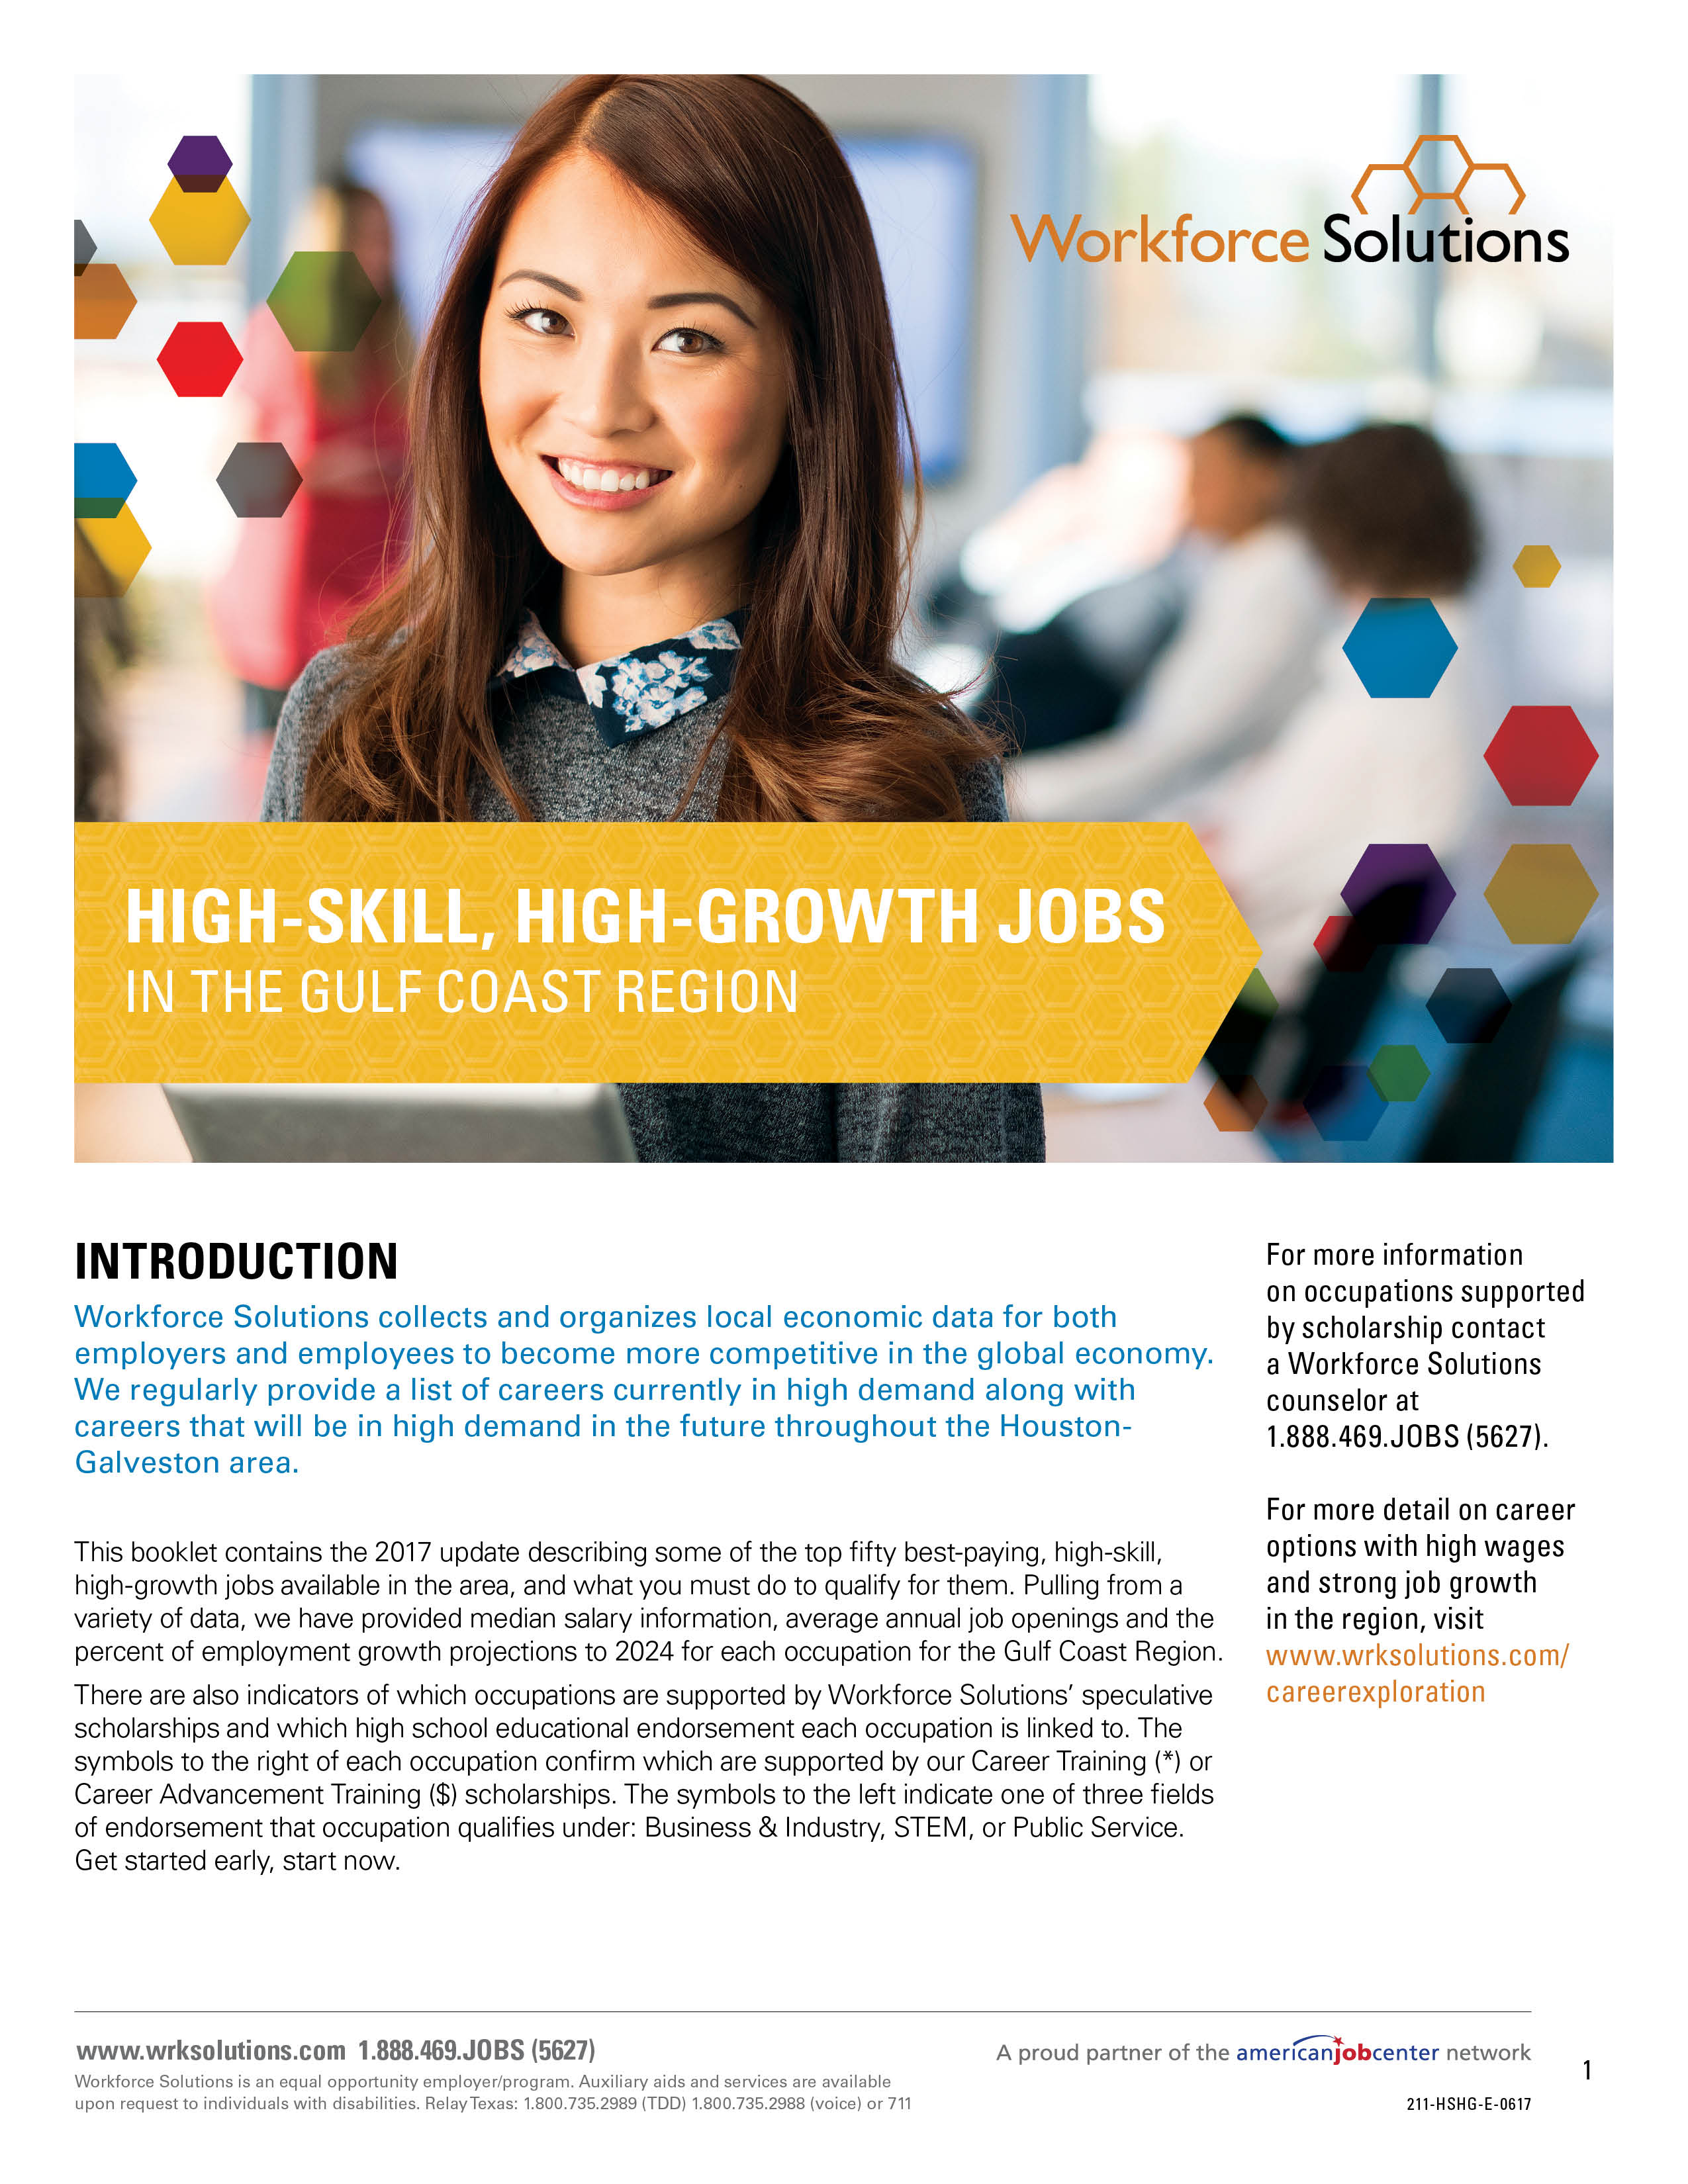 Tapa de revista High Skill, High Growth